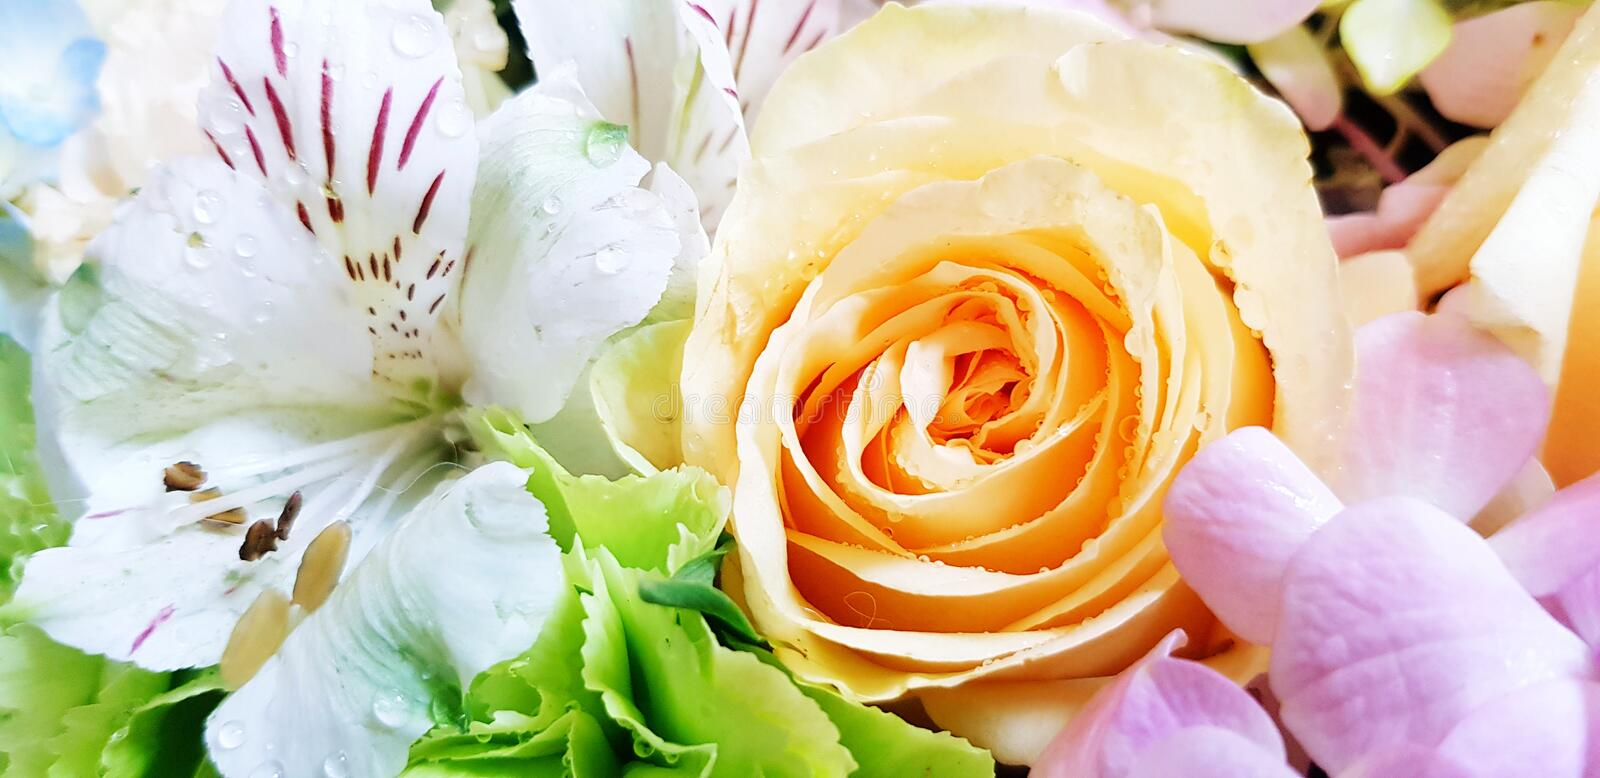 Close up beautiful orange rose and flowers blooming for background stock image